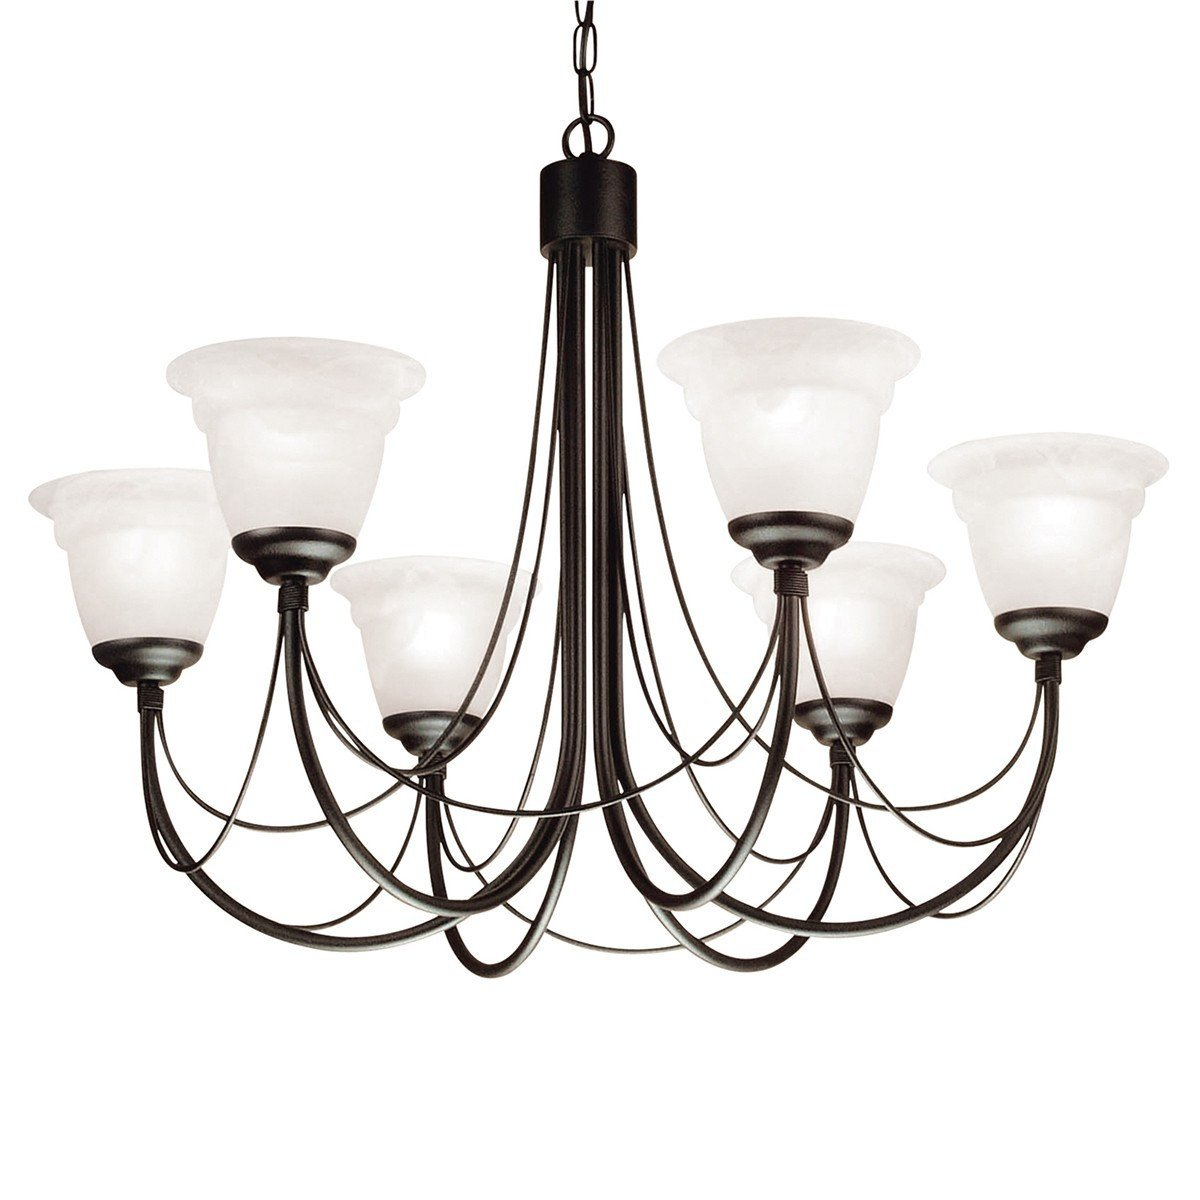 Carisbrooke 6 Arm Chandelier Black - London Lighting - 1